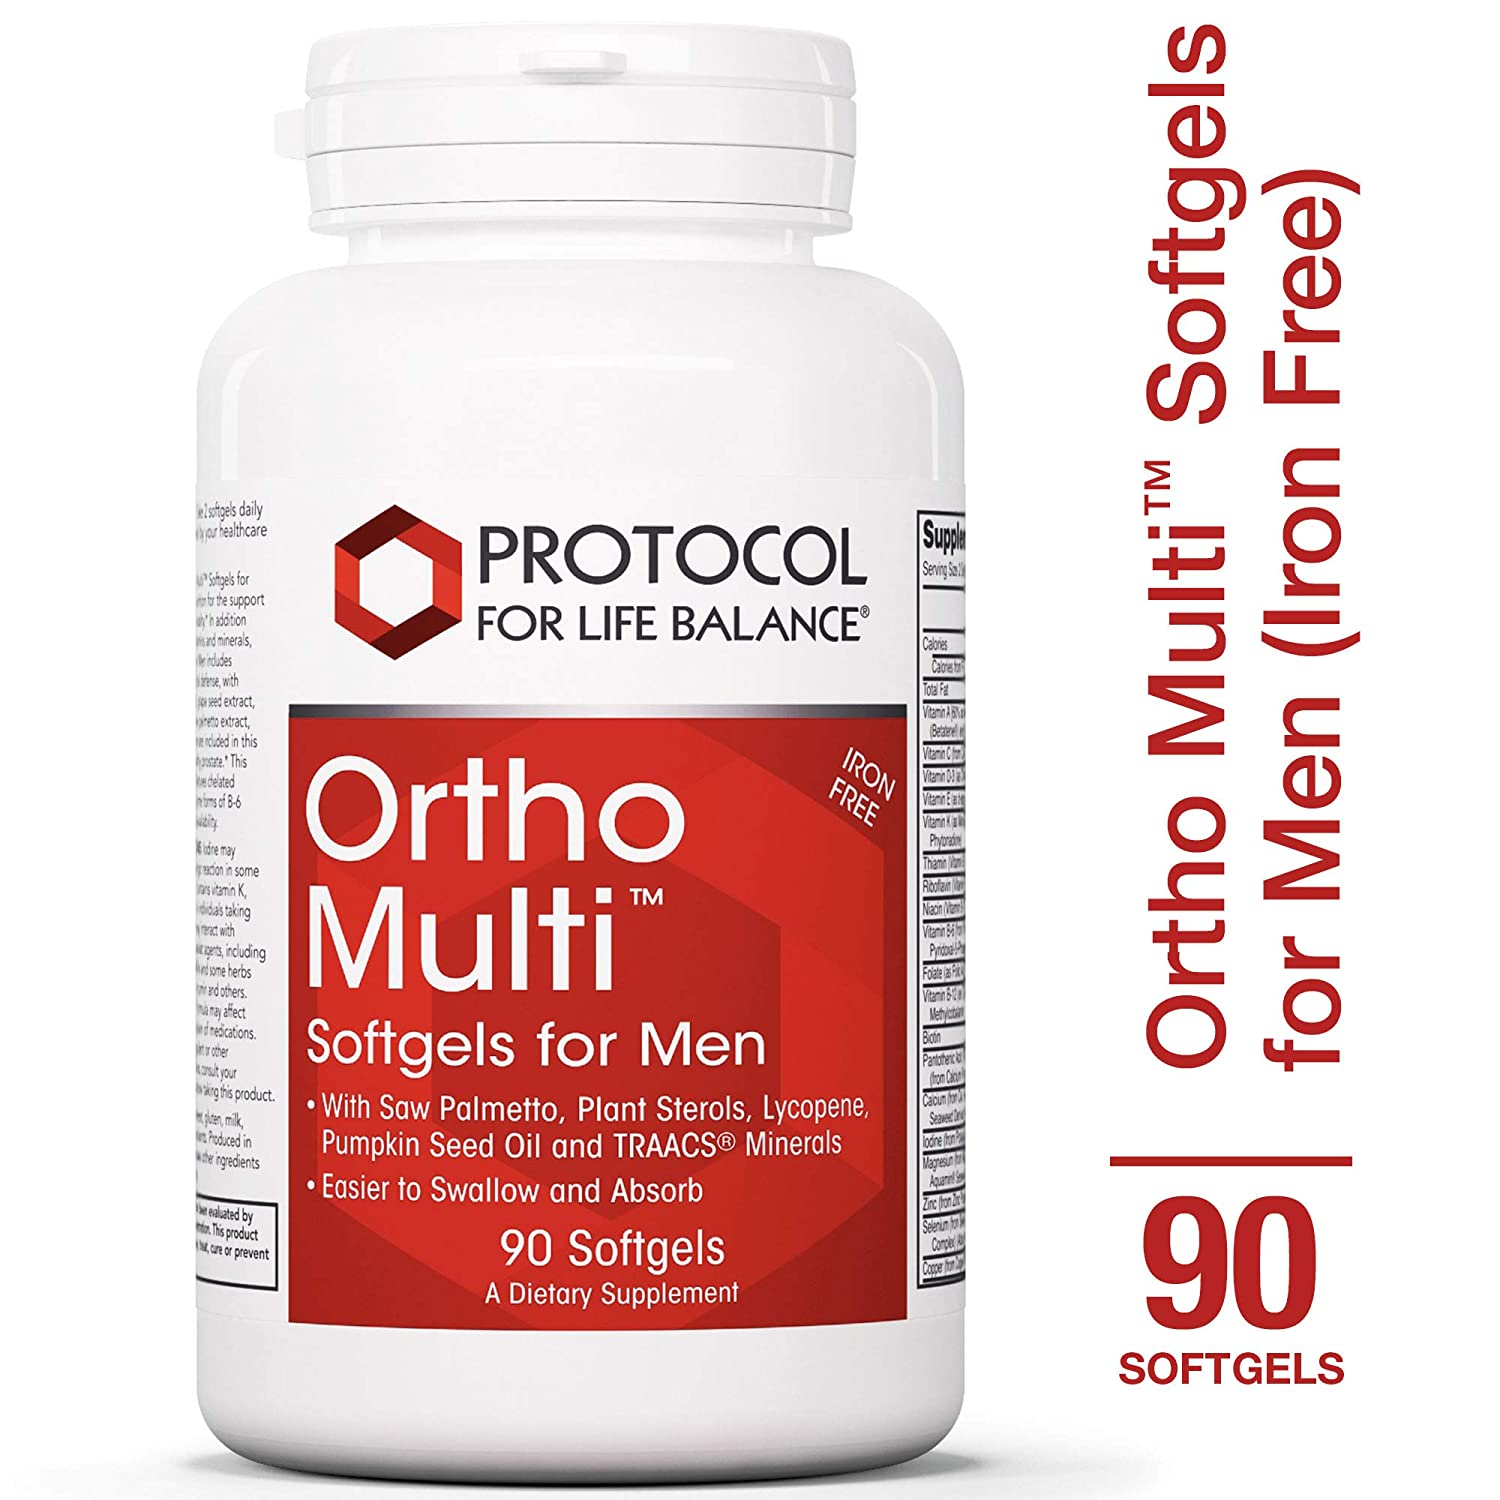 Protocol For Life Balance – Ortho Multi Softgels for Men Iron Free – with Saw Palmetto, Plant Sterols, Lycopene, Pumpkin Seed Oil and TRAACS Minerals, Easier to Swallow and Absorb – 90 Softgels